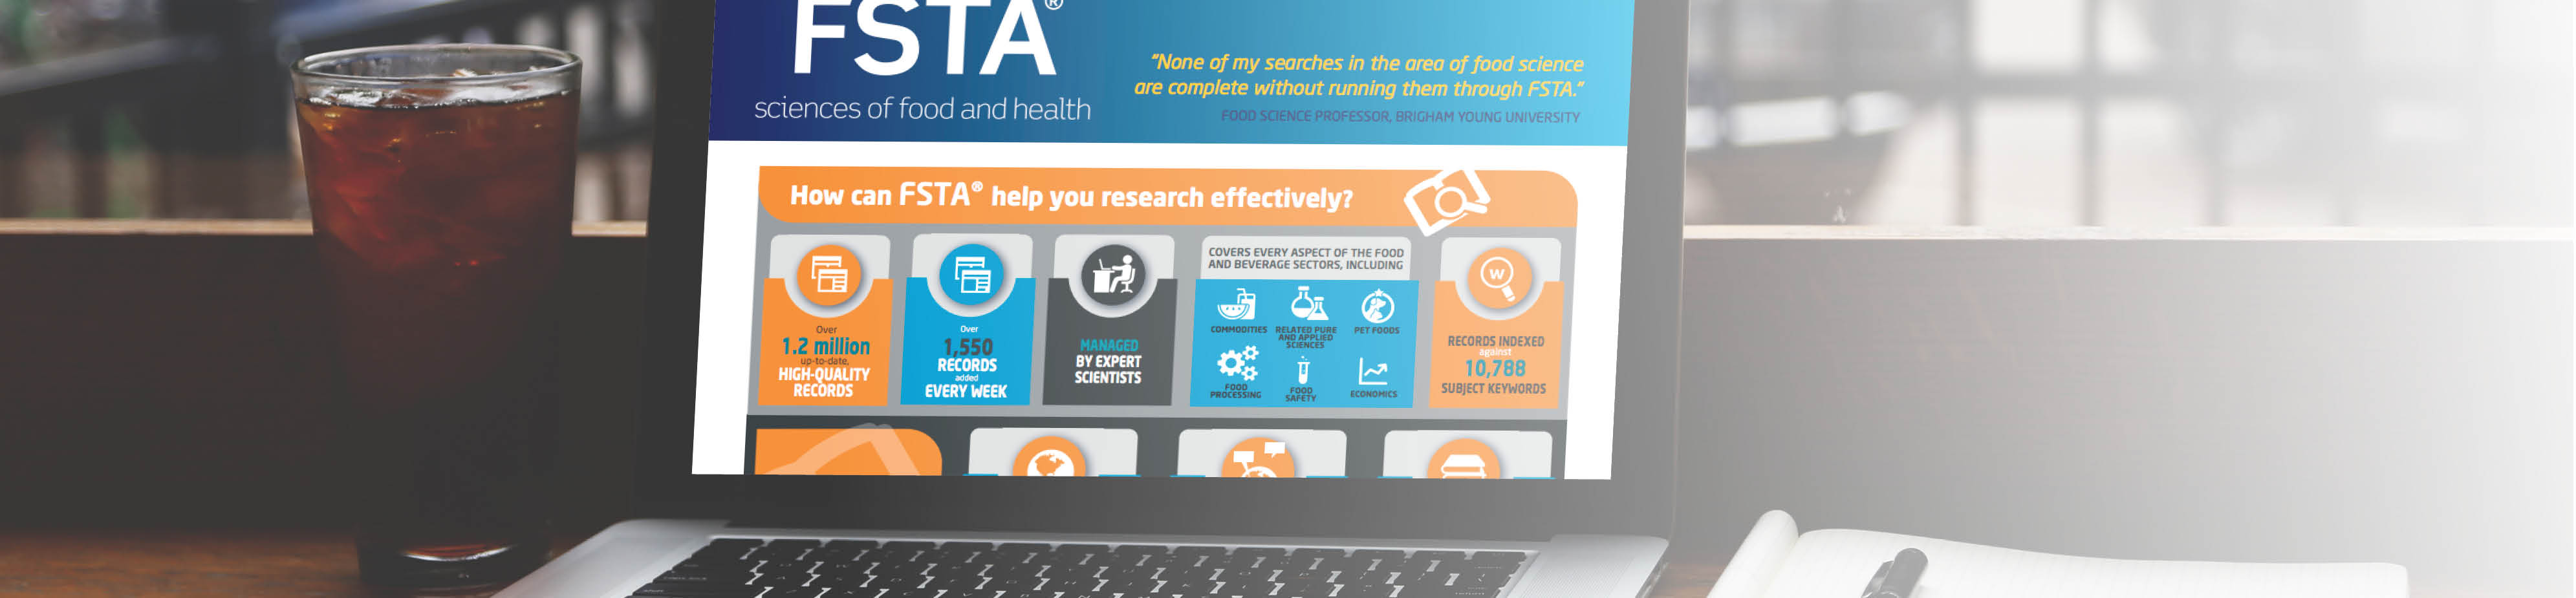 FSTA-Food-Science-and-Technology-Abstracts.jpg